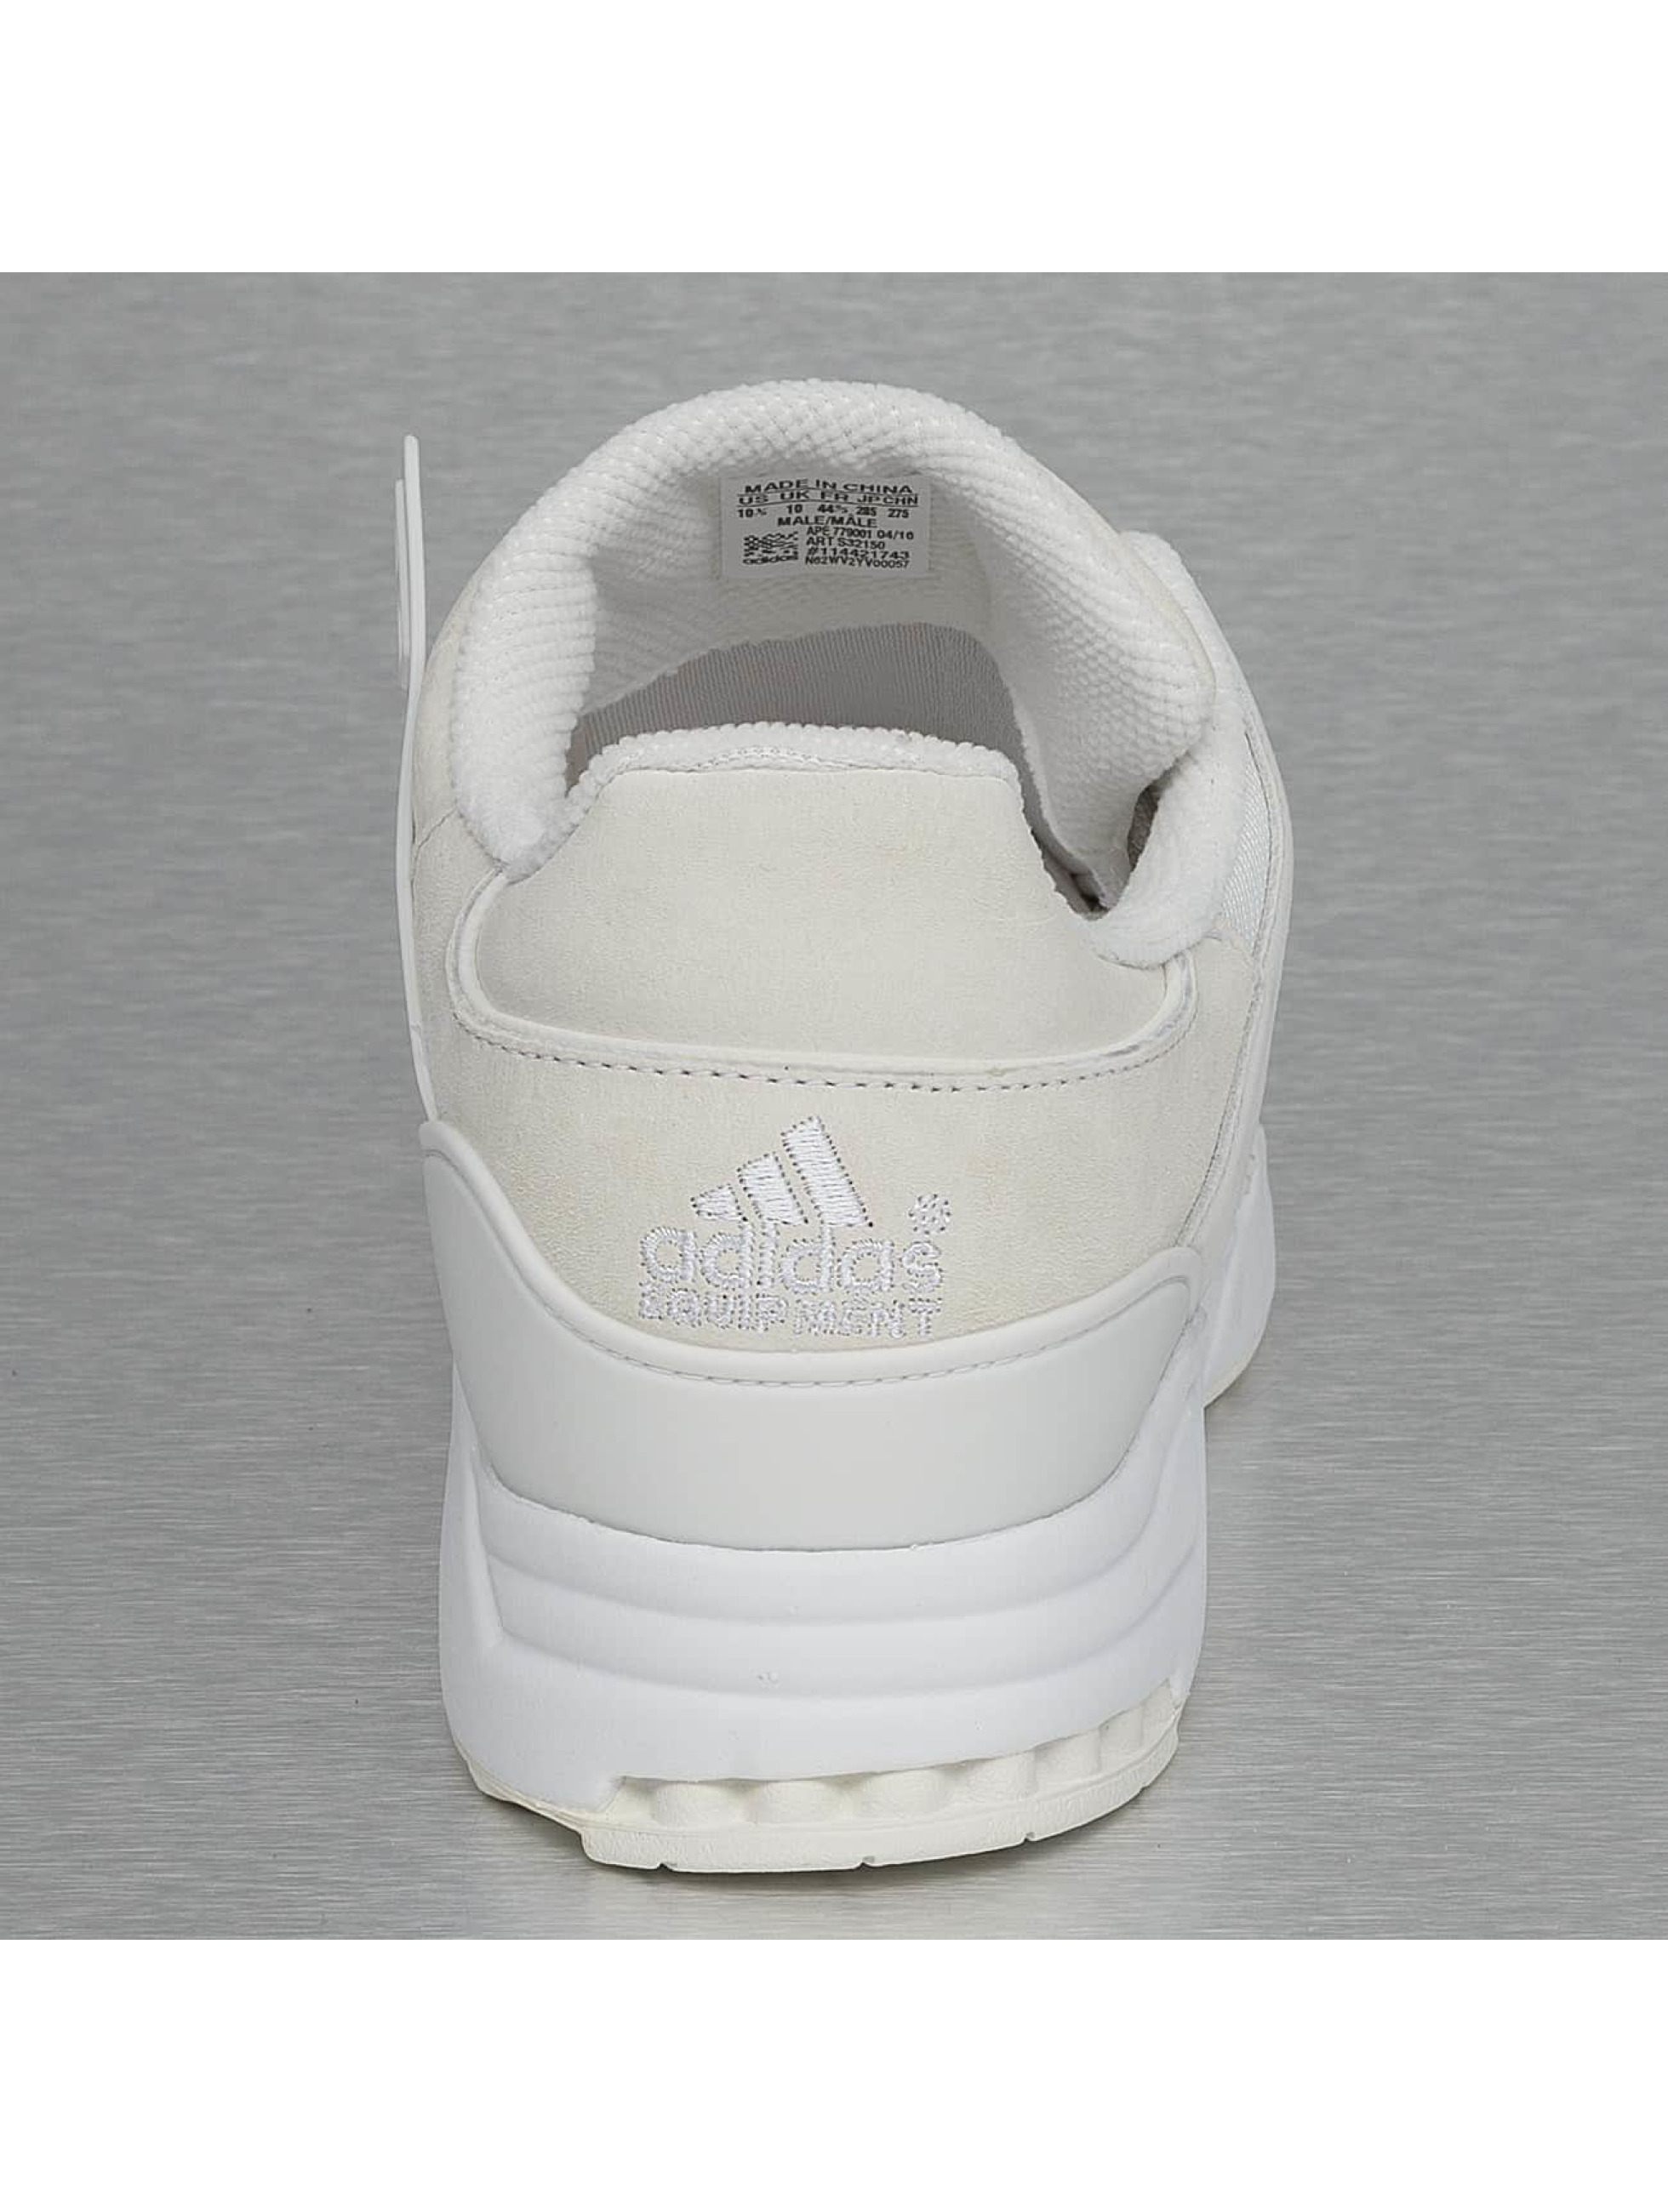 adidas Zapatillas de deporte Equipment blanco